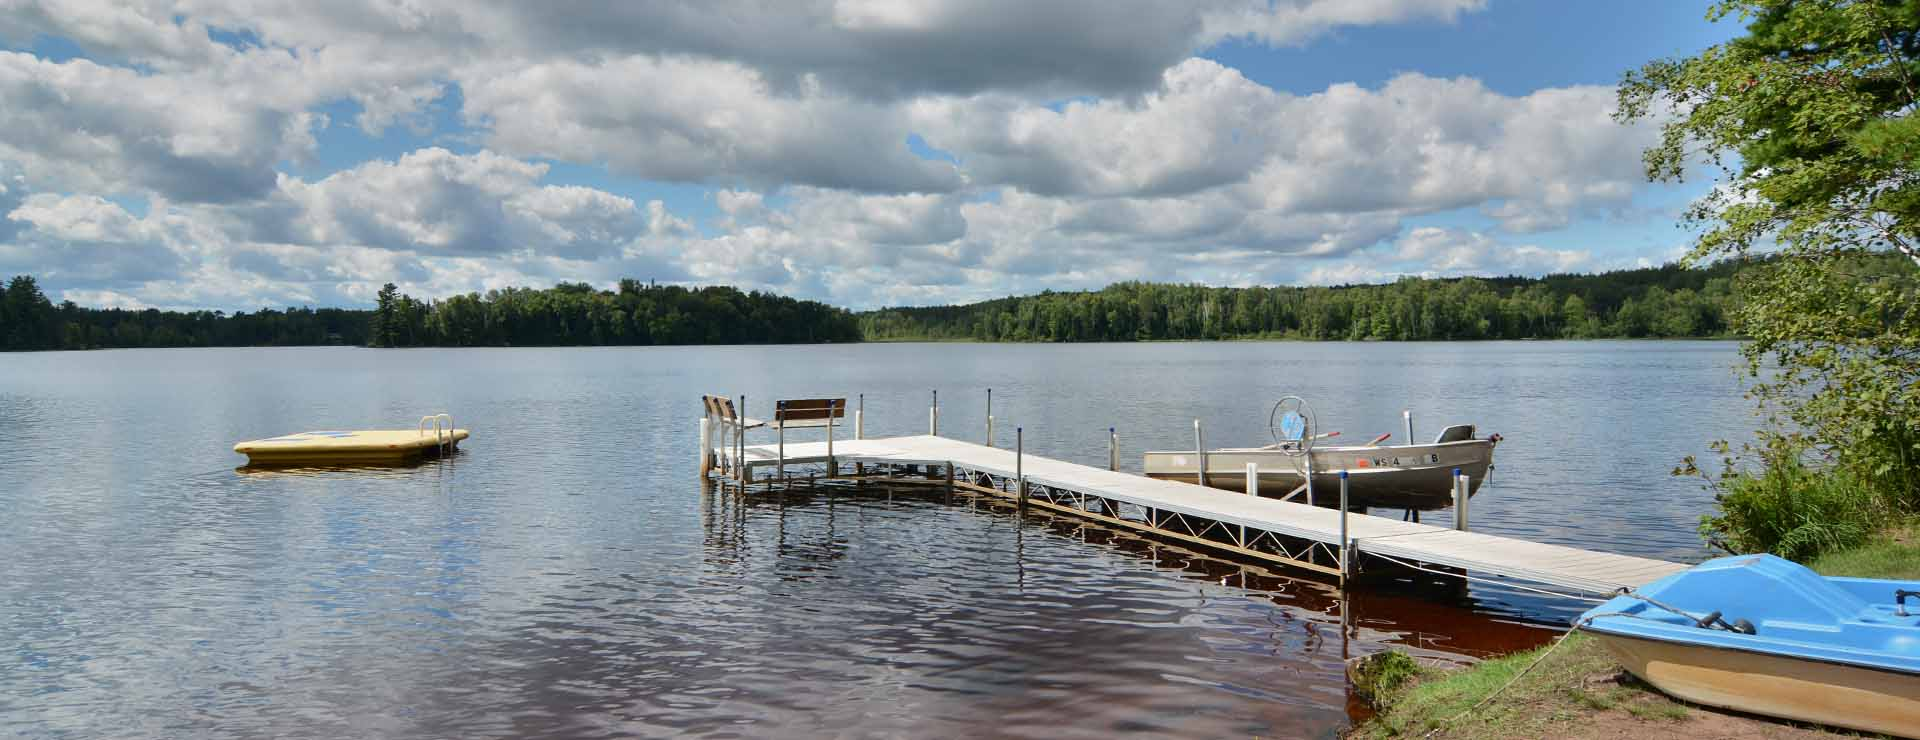 slide-lakeview-lower-clam-lake3